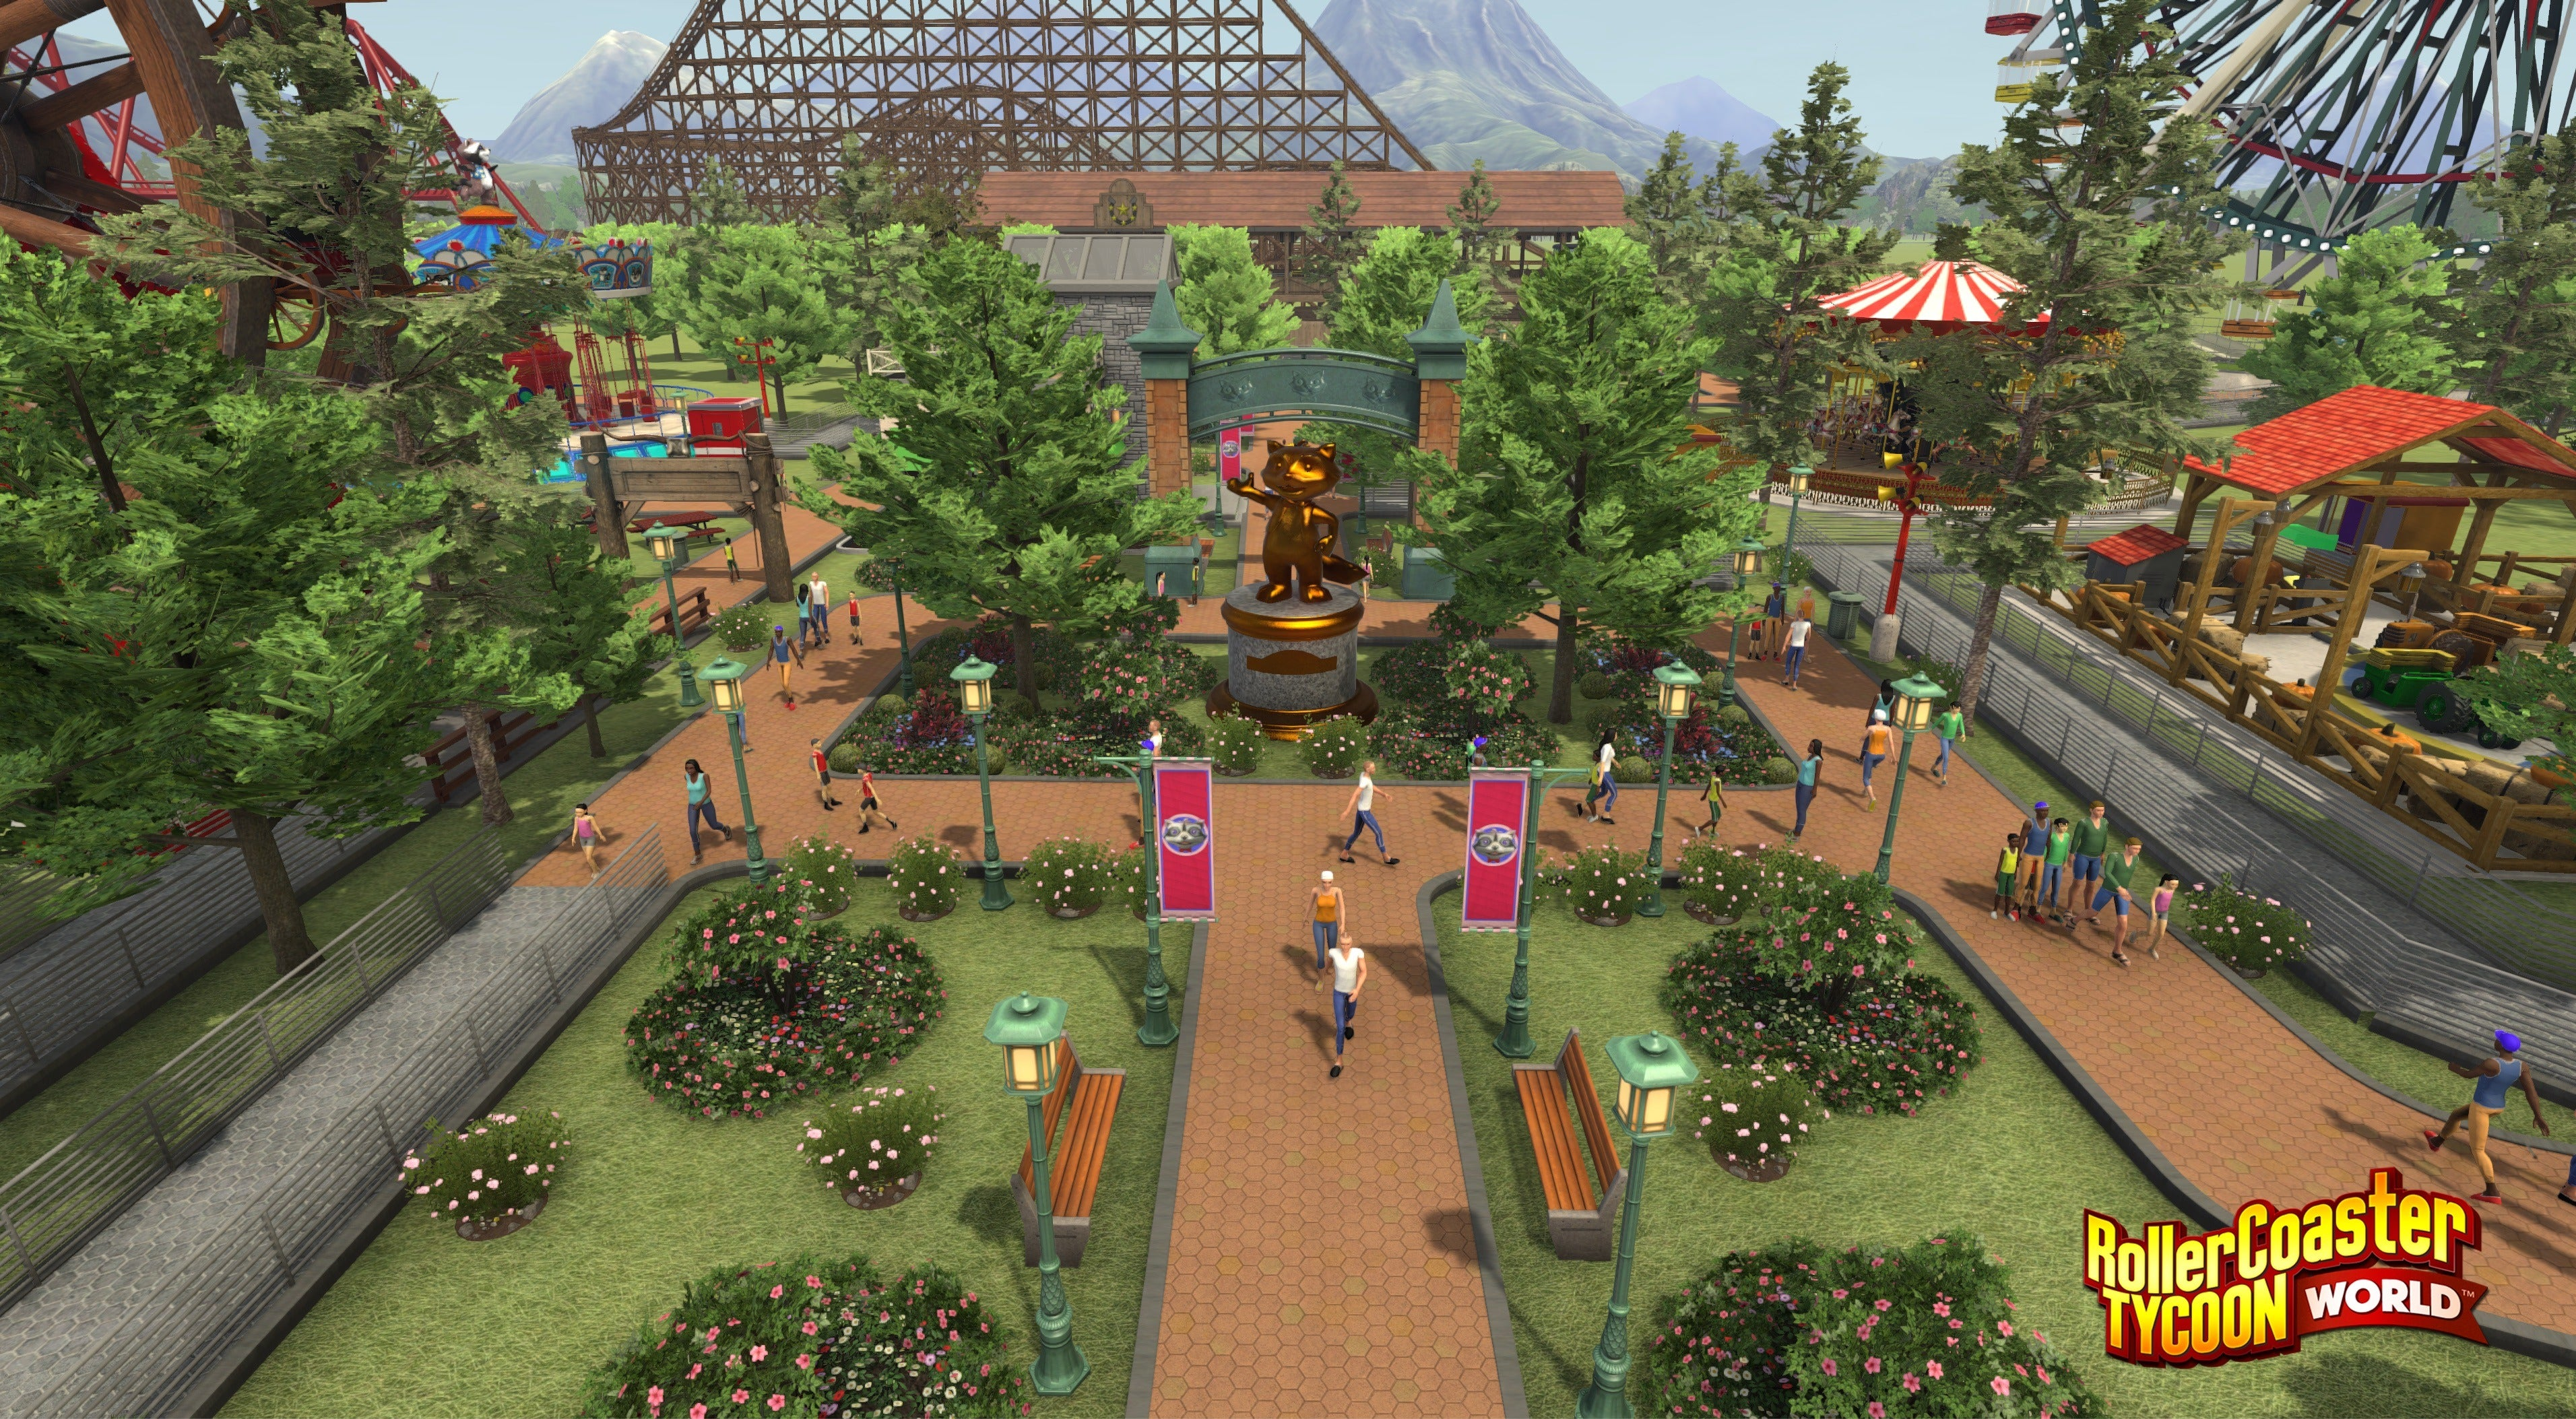 RollerCoaster Tycoon World preview: A wild(ly easy to get into) ride